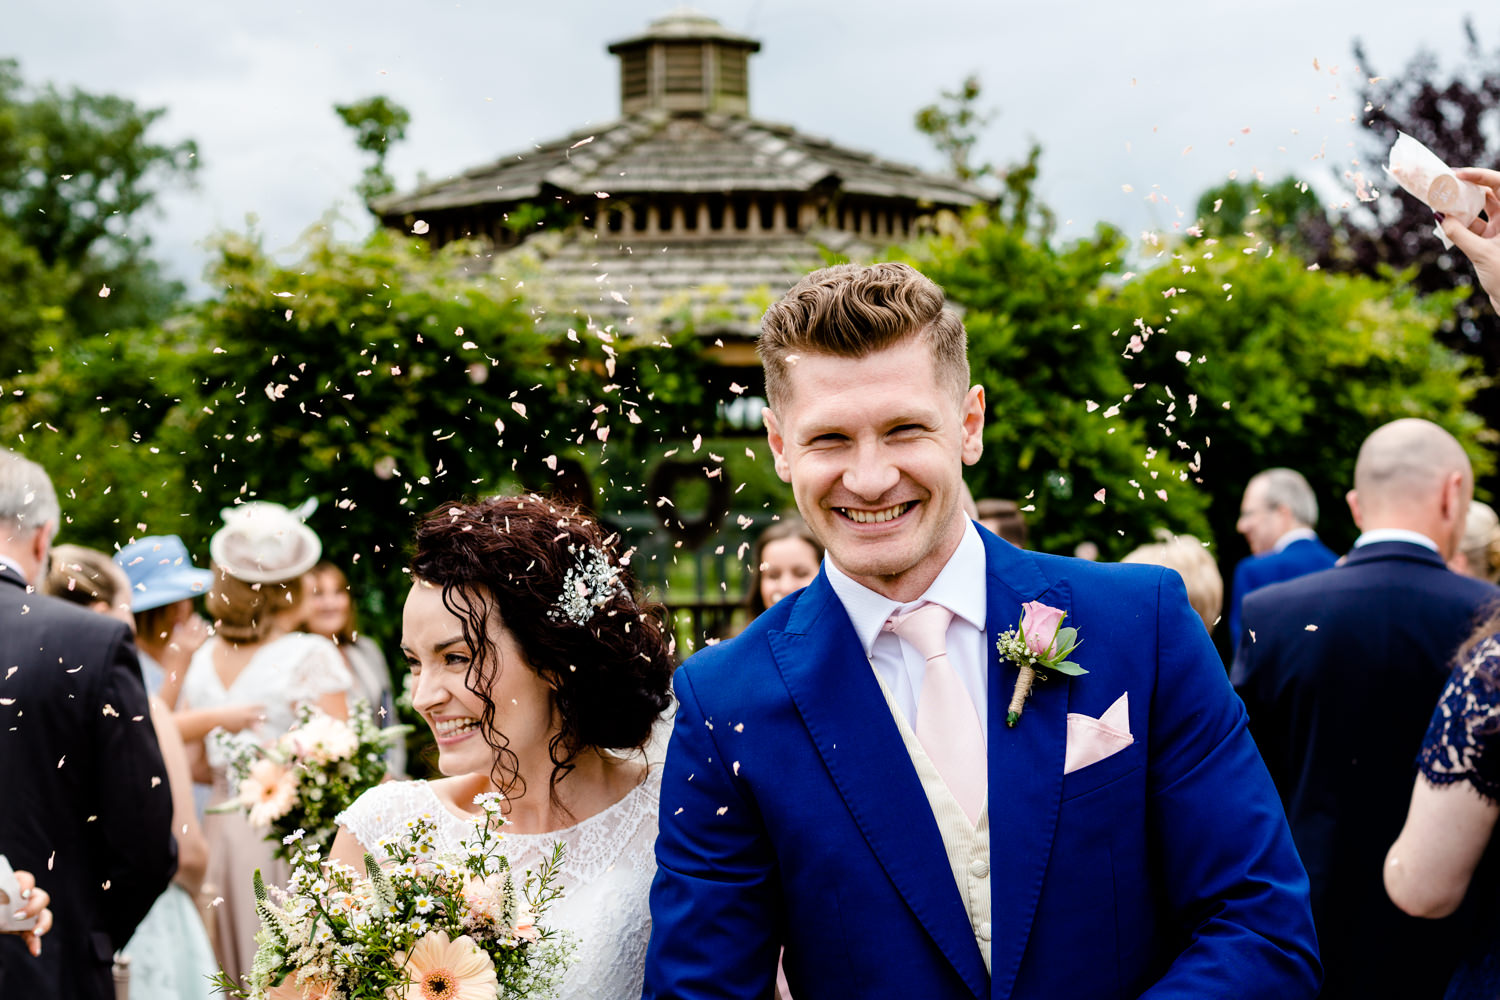 Confetti being thrown over a couple as they walk up the isle, wedding photography at Pryors Hayes Venue.